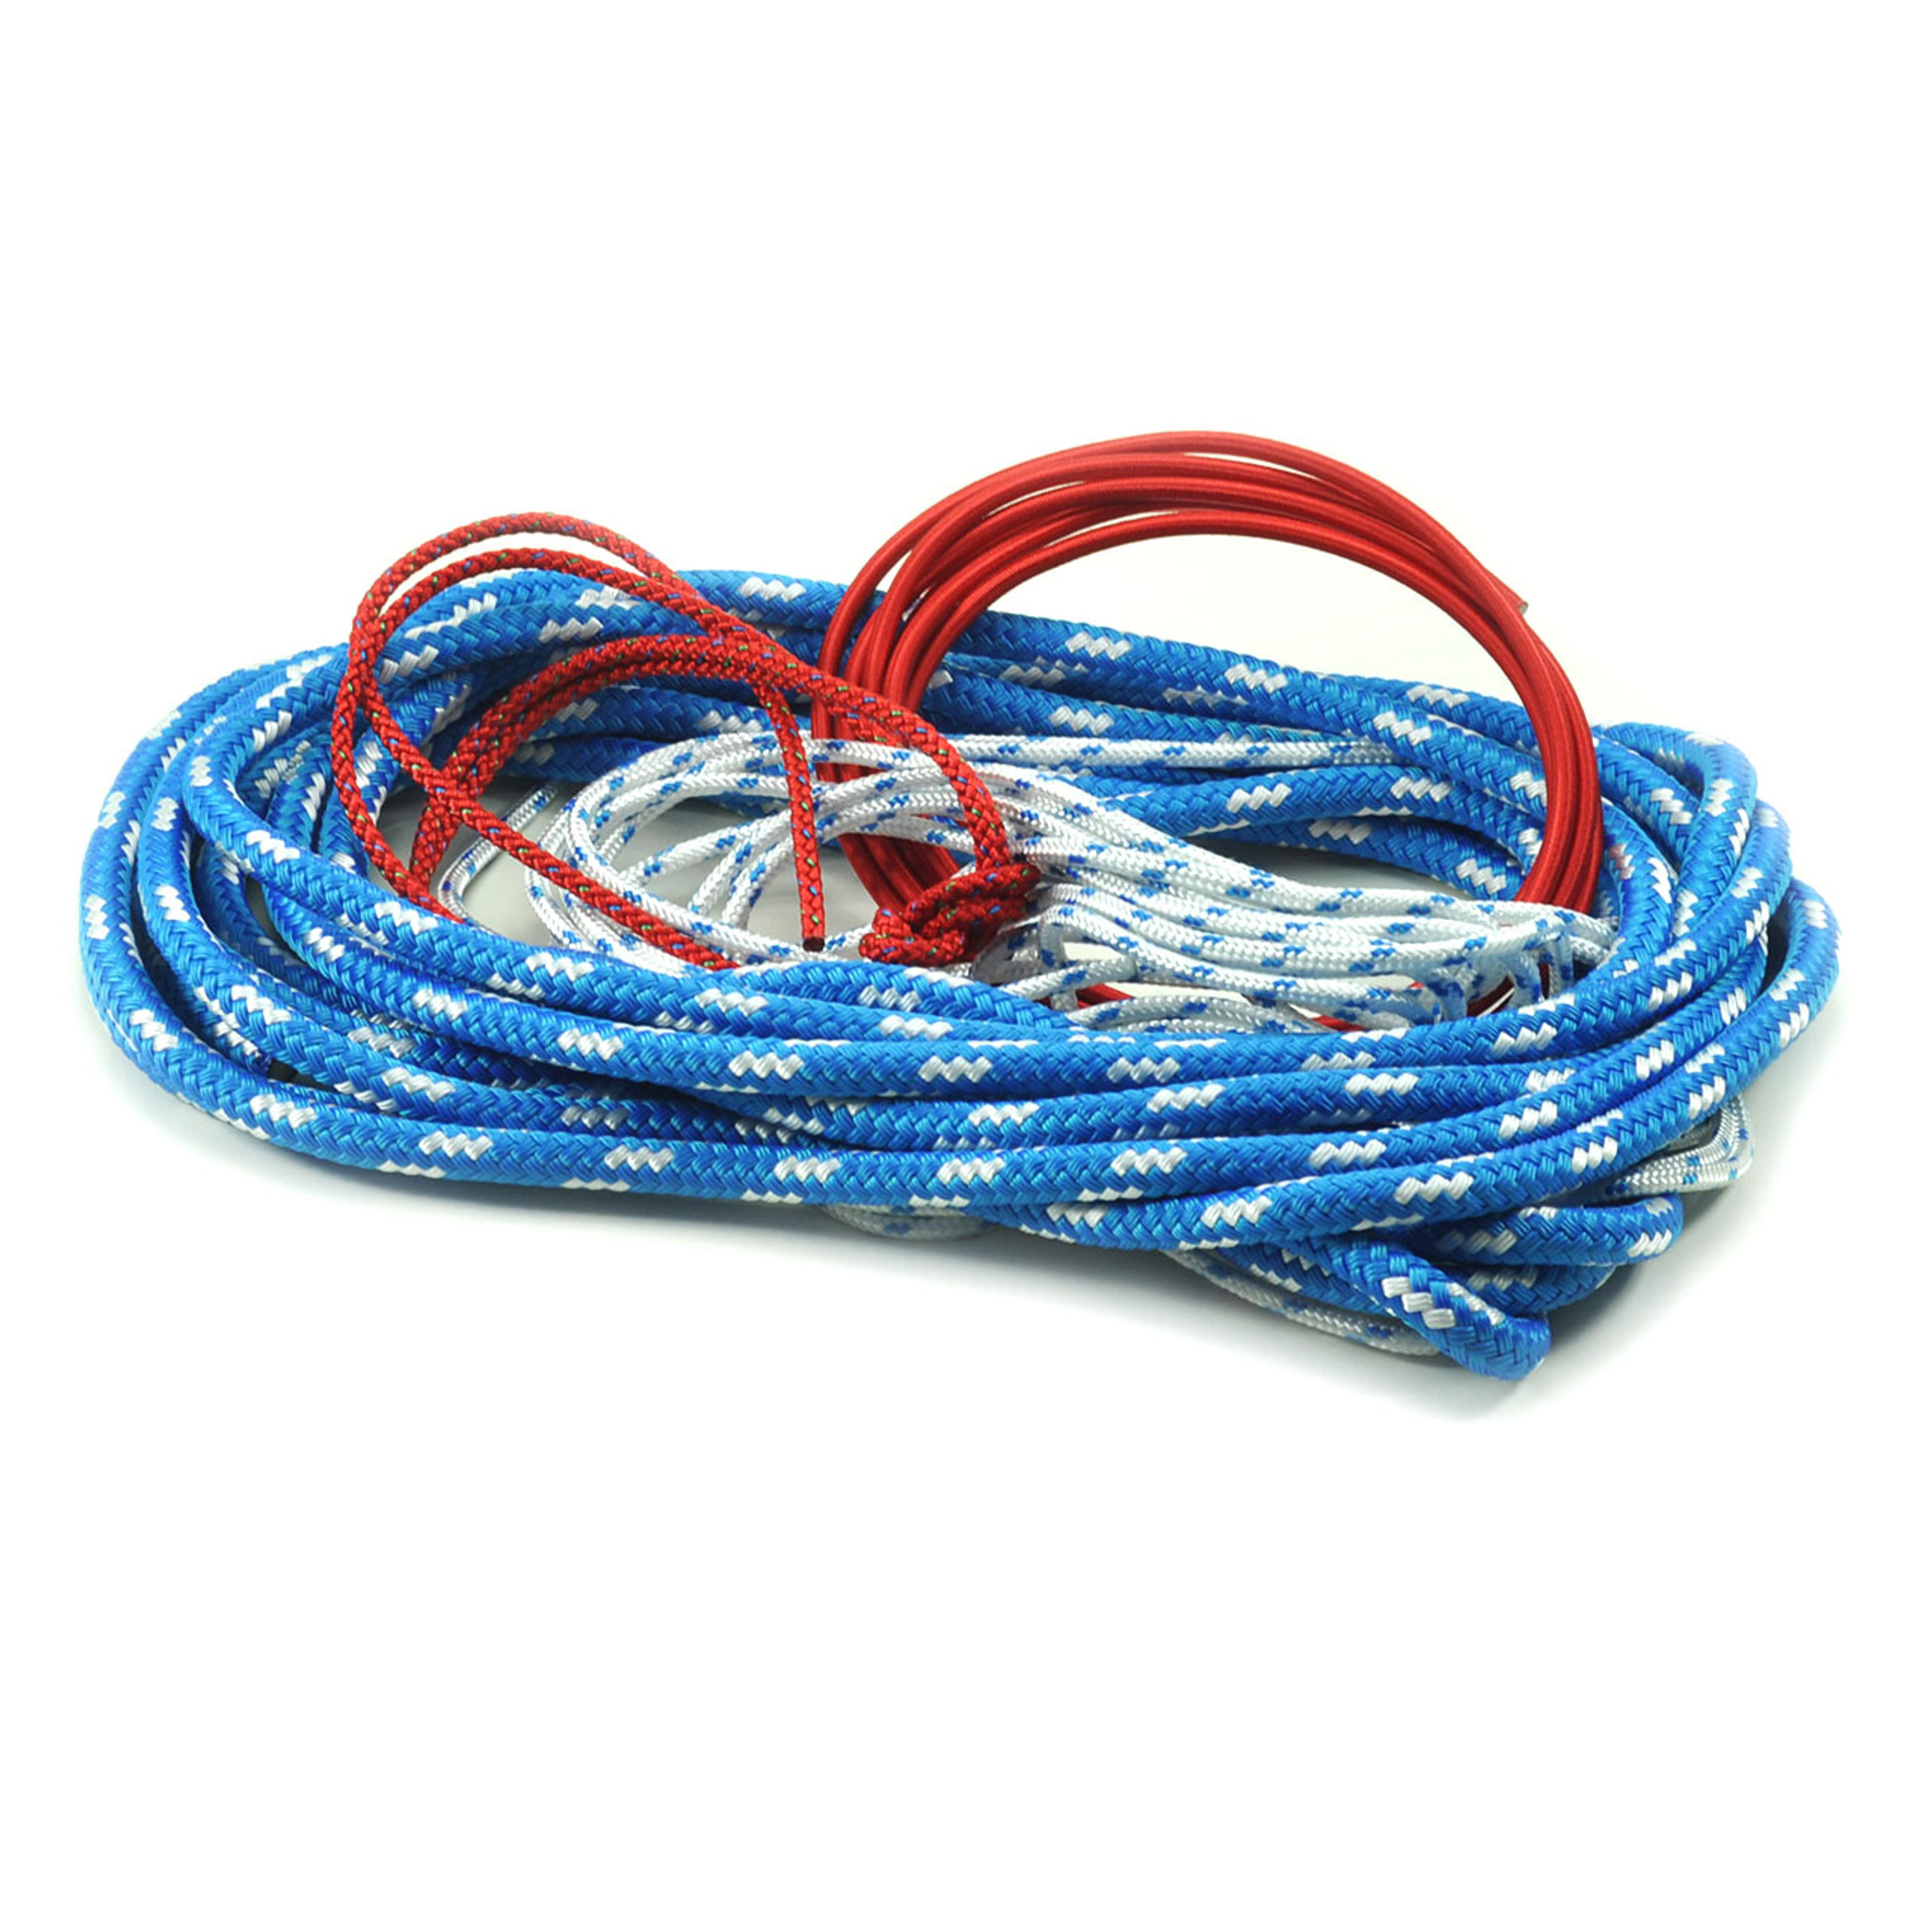 Sunfish Sailboat Replacement Rigging Line Kit - R&W Rope